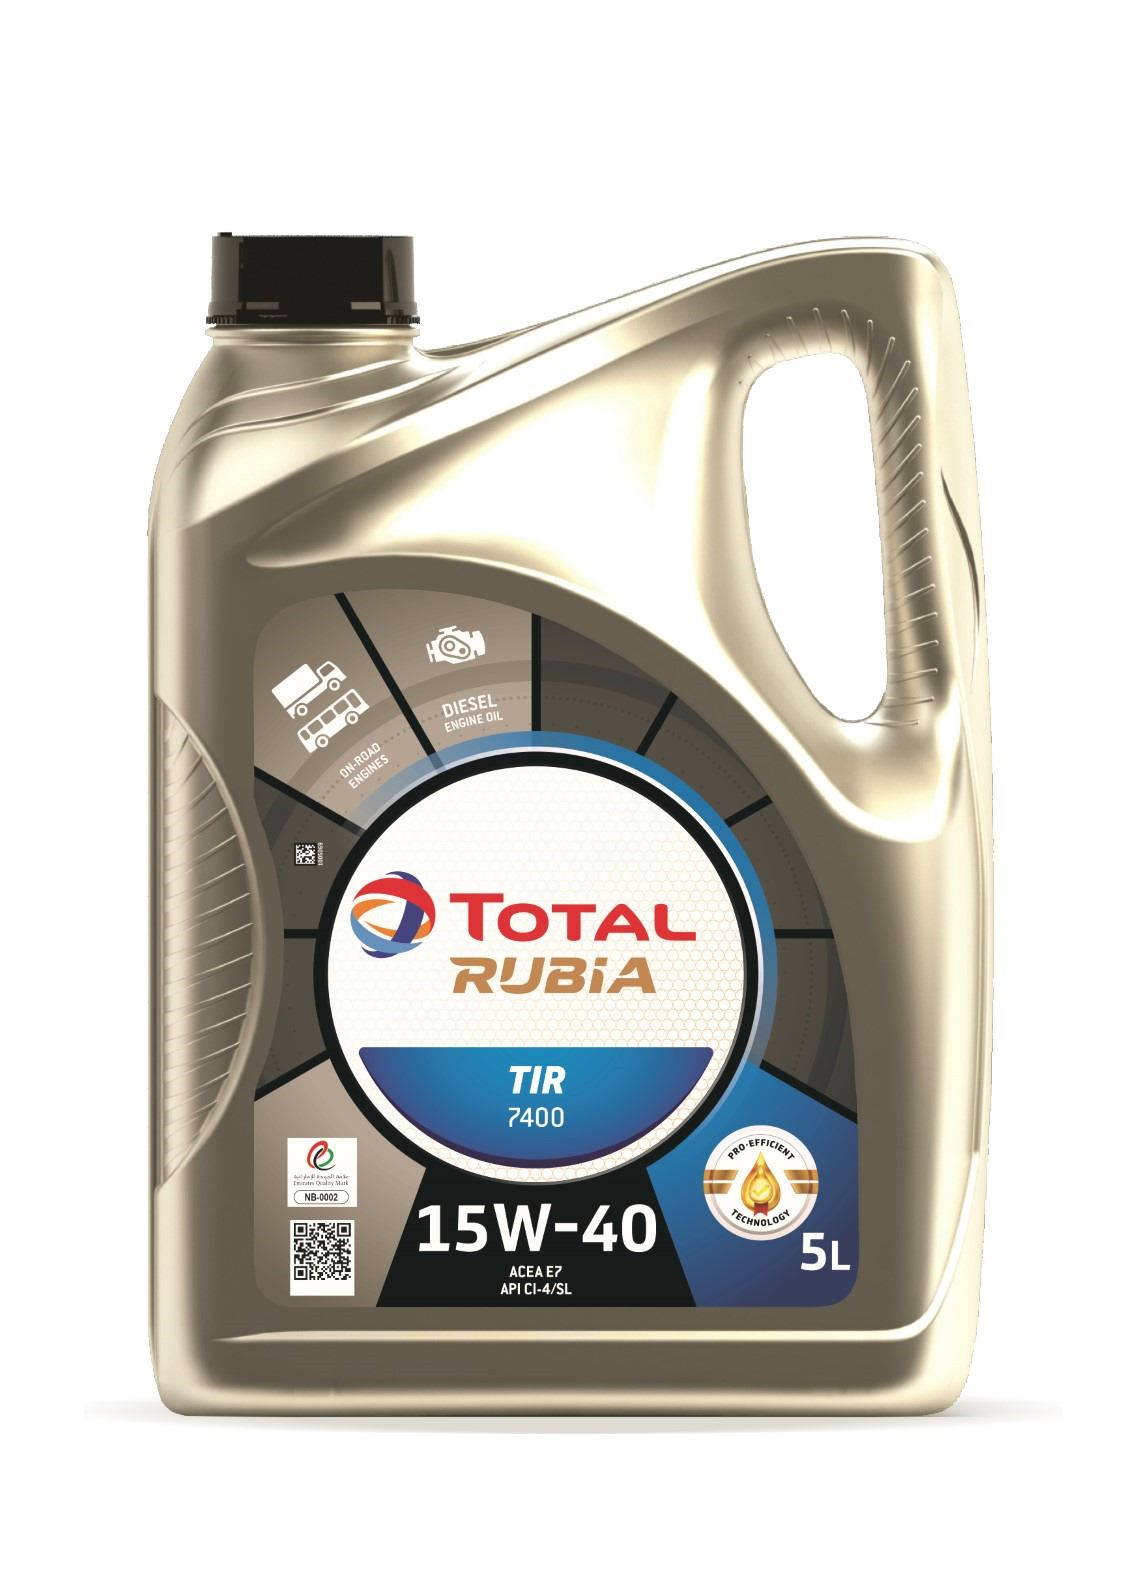 https://commercial.fordfuels.co.uk/wp-content/uploads/sites/10/Total-Rubia-7400-15w-40-318x450.jpg+https://commercial.fordfuels.co.uk/wp-content/uploads/sites/10/Total-Rubia-7400-15w-40-636x900.jpg